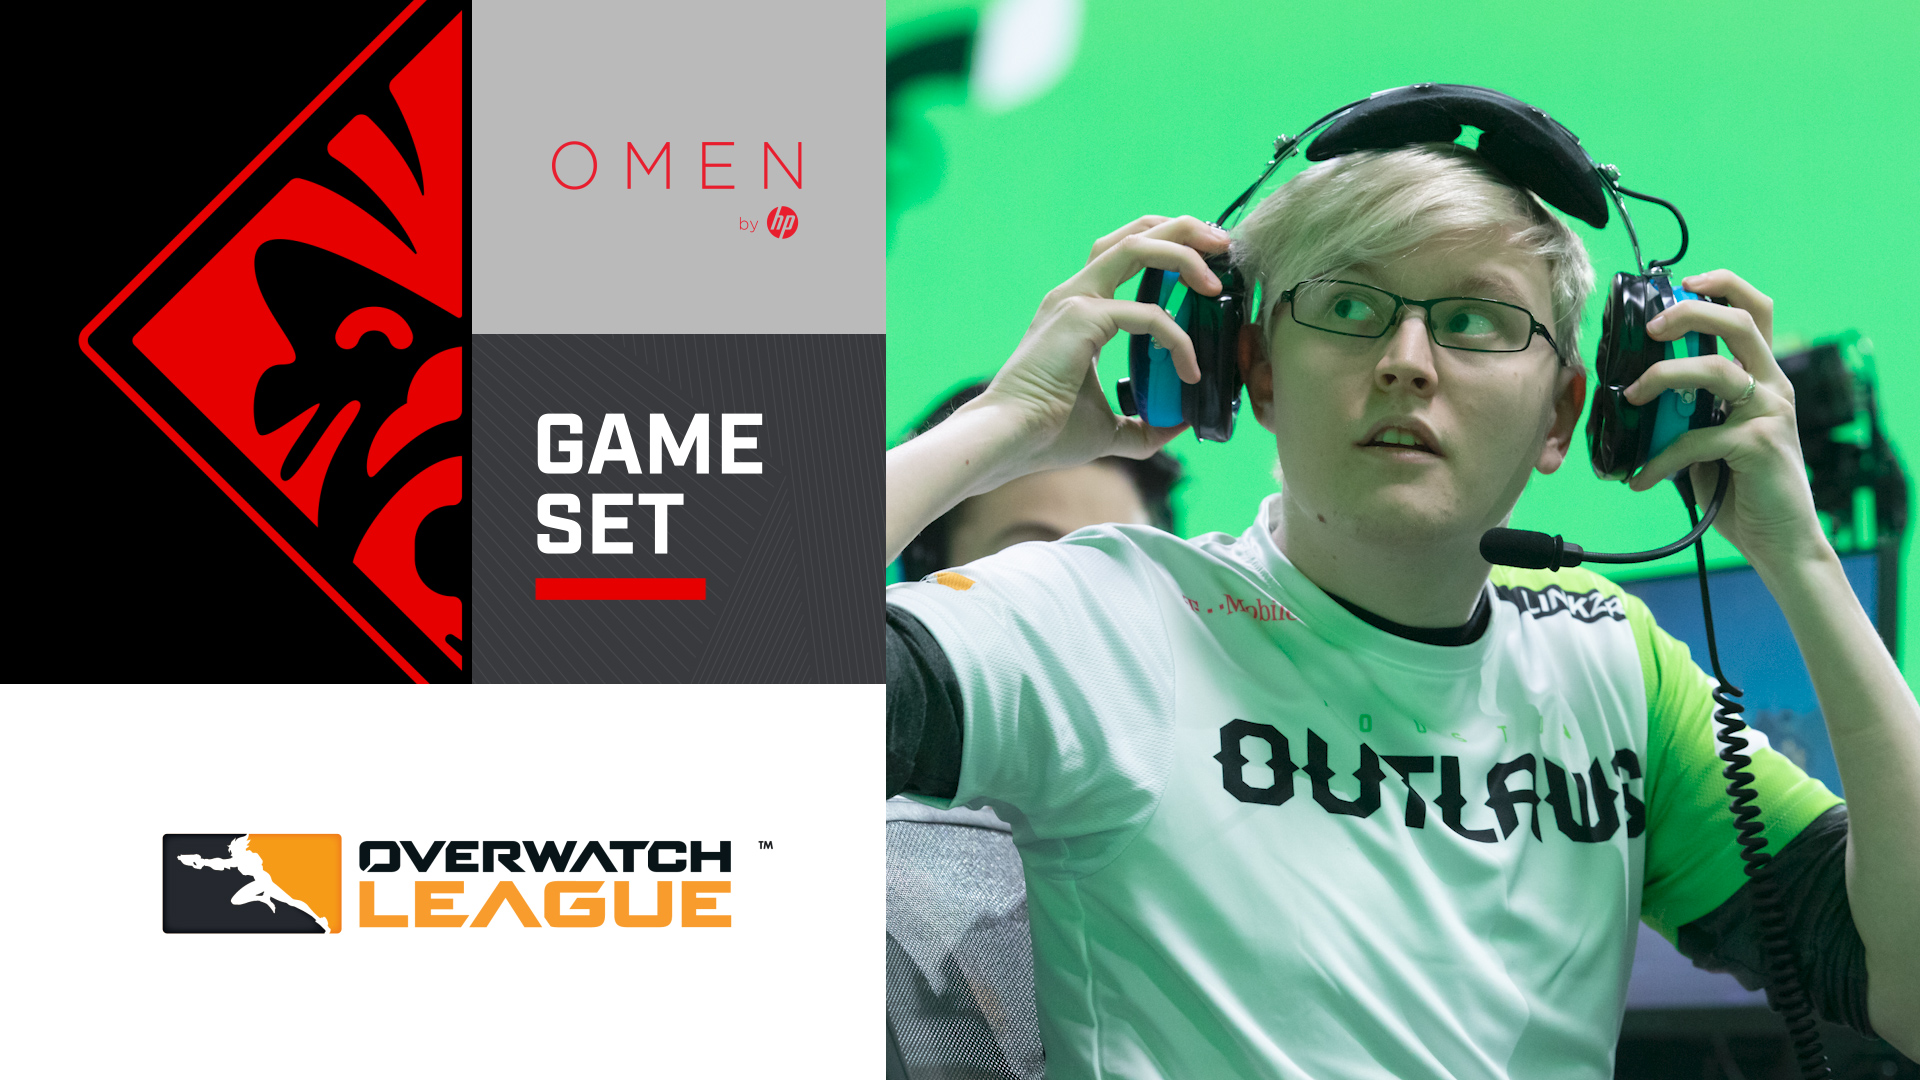 Game/Set mit LiNkzr von den Houston Outlaws